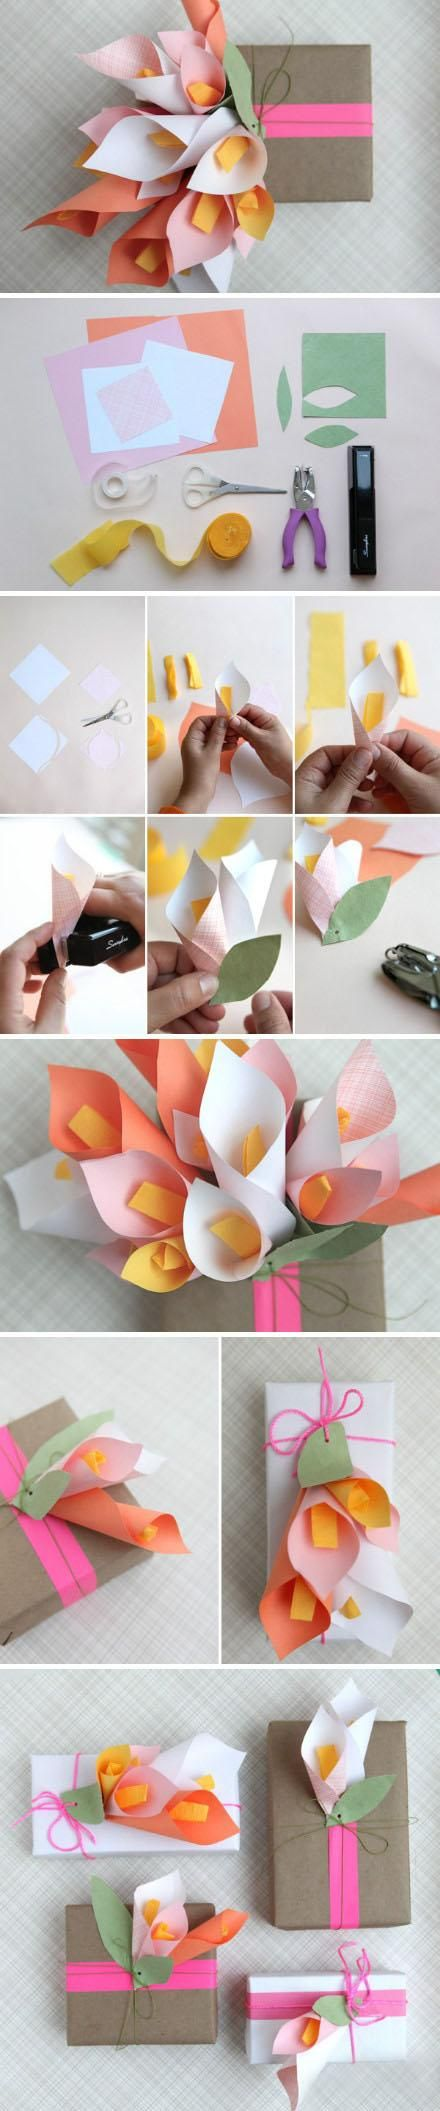 paper cala lily flowers (bad link, but the pictures tell the story very well!)